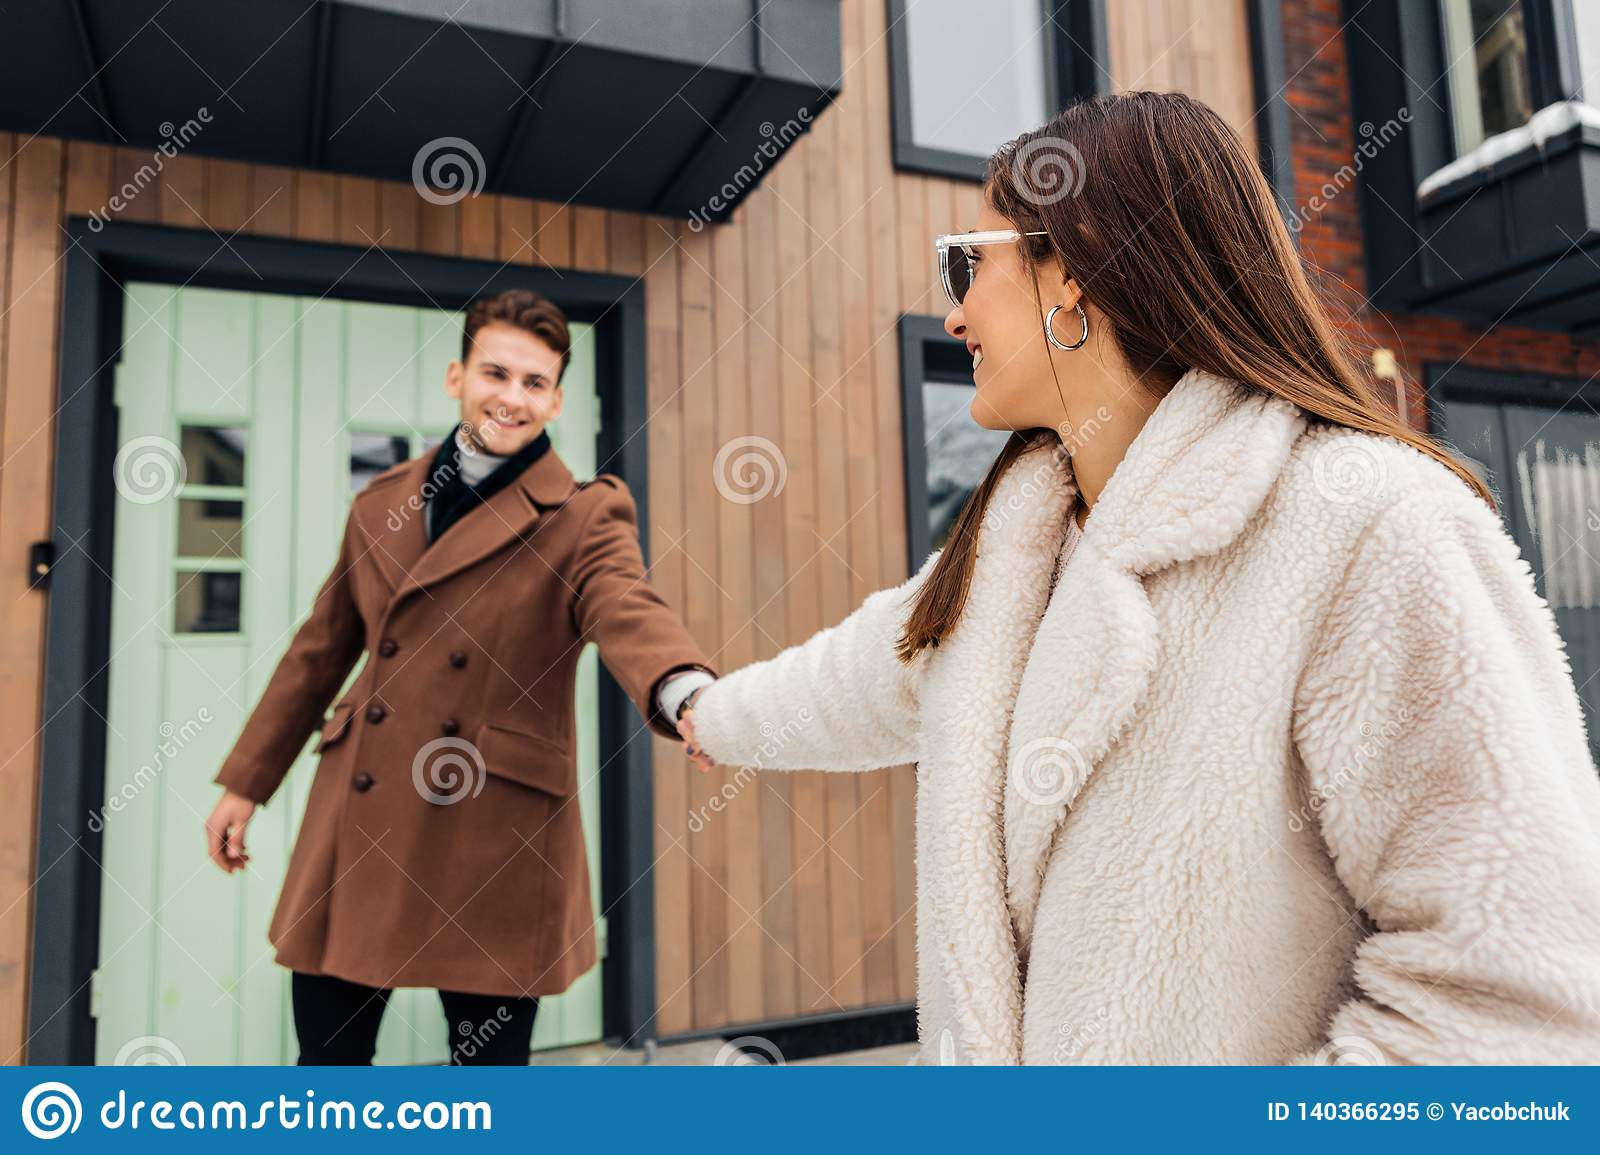 Stylish wife wearing warm beige coat asking her man to go for a walk